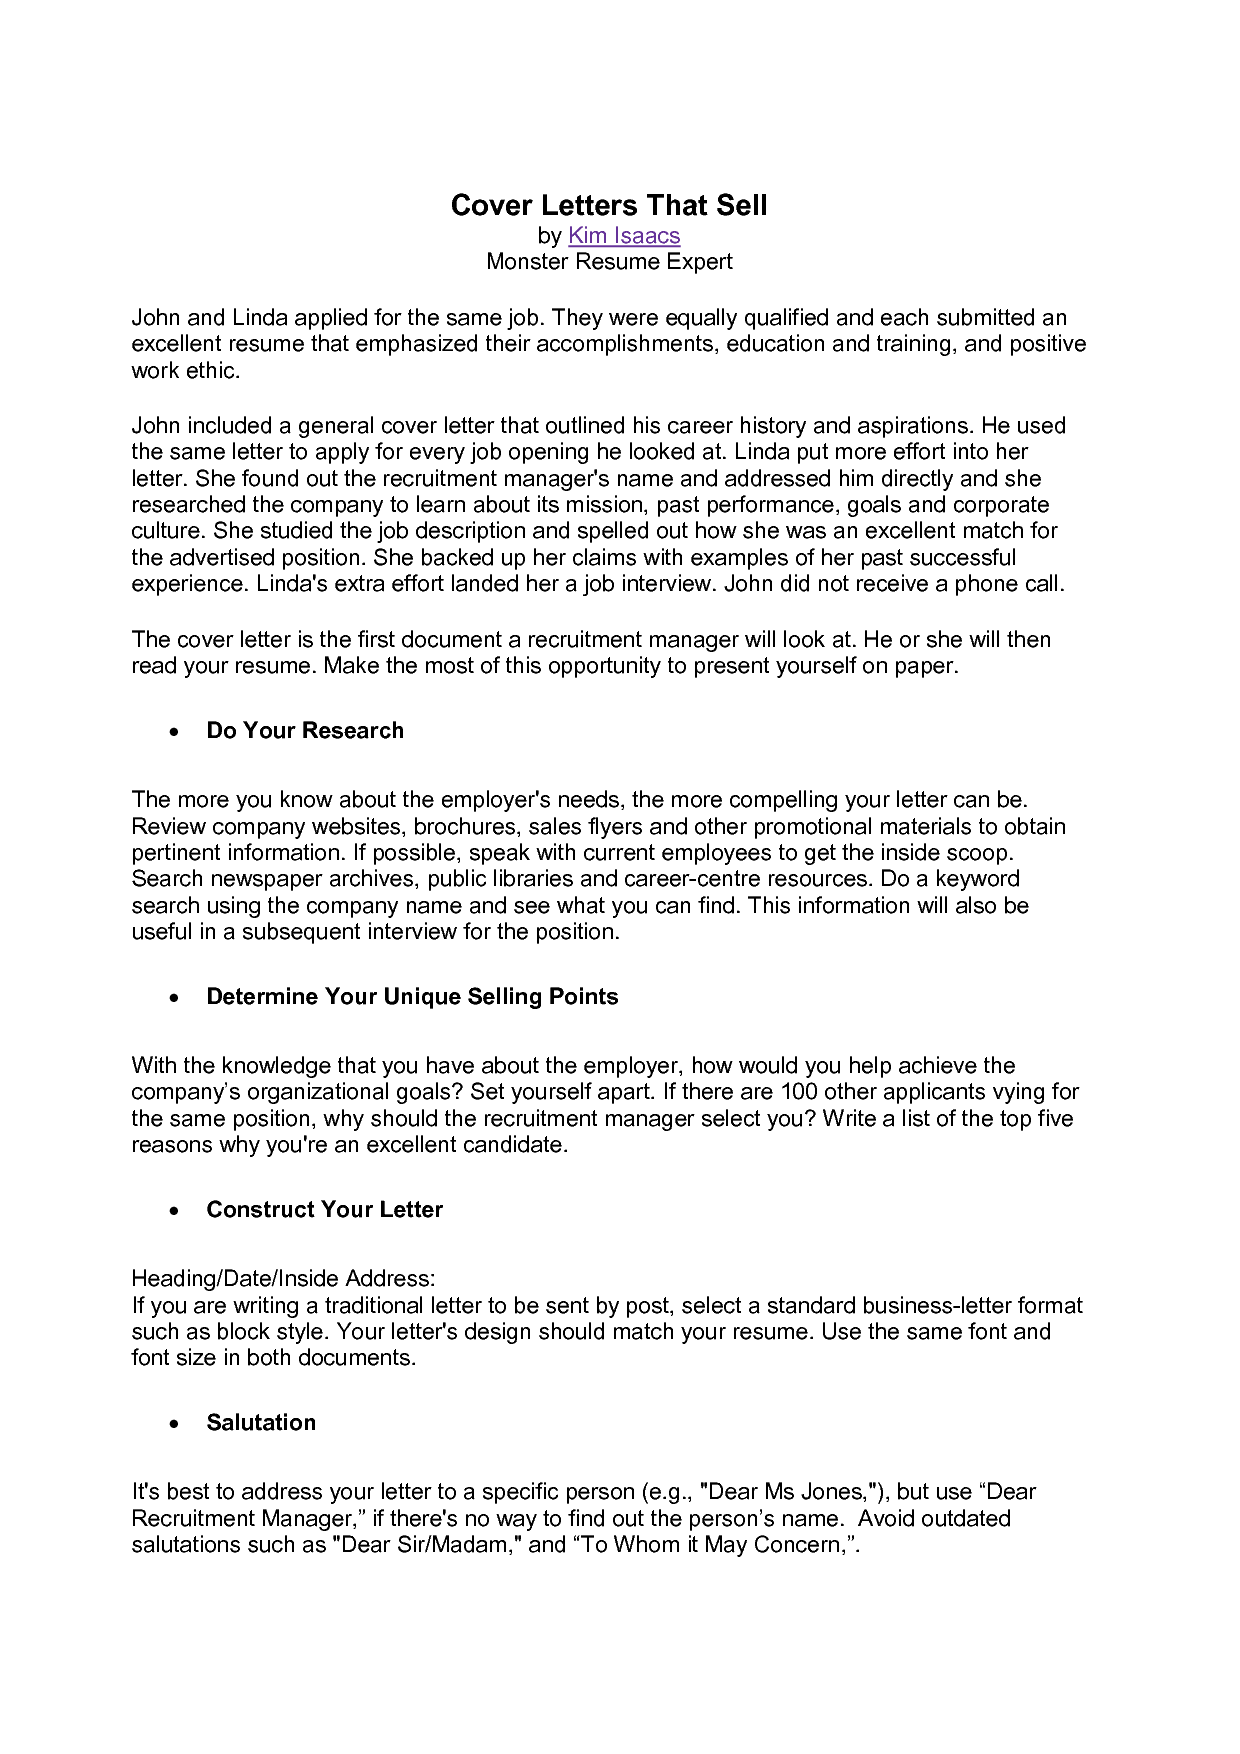 Monster Cover Letter Free Download Monster Cover Letter, Monster Cover  Letter Template, Monster Cover Letter Examples, Monster Cover Letter Tips,  ...